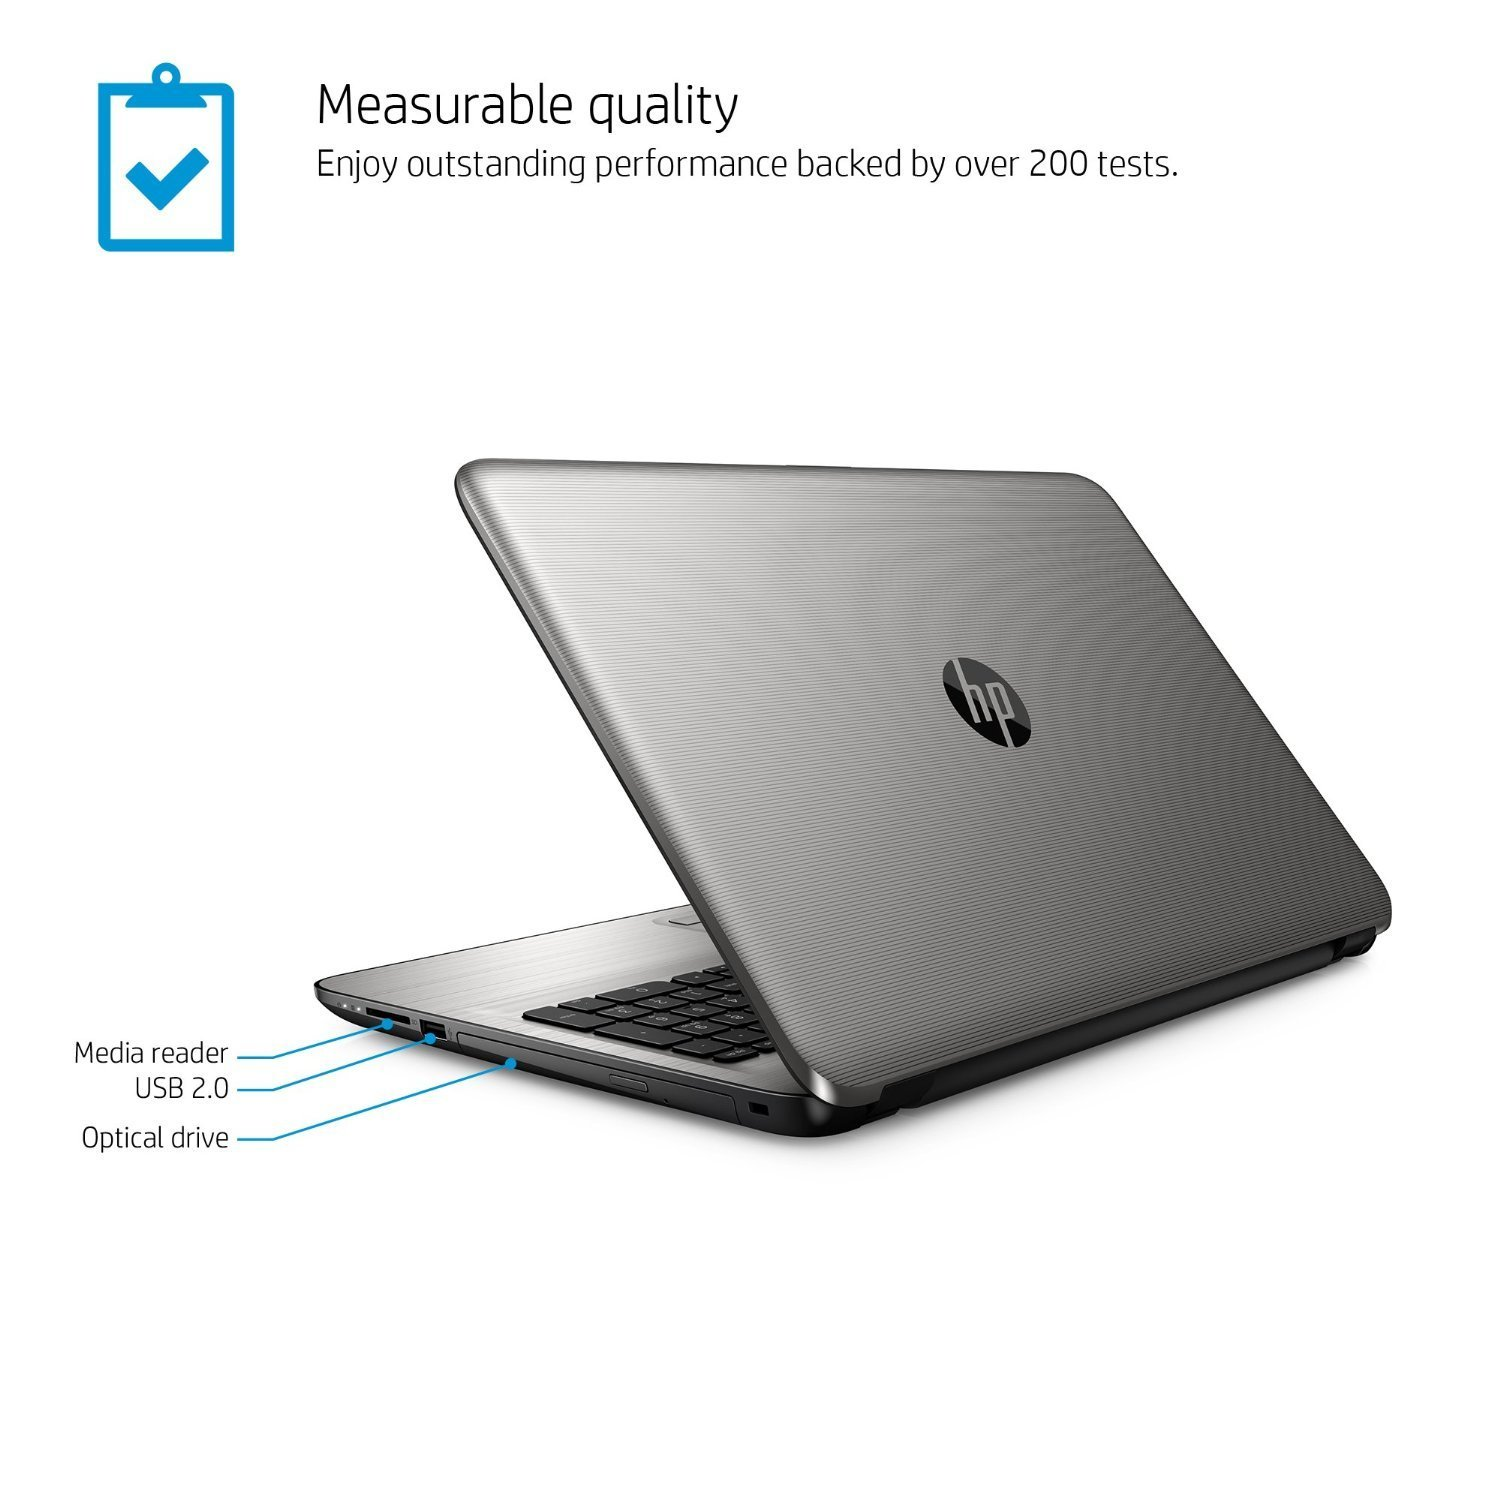 Amazon HP 15 Ay013nr 156 Full HD Laptop 6th Generation Core I5 8GB RAM 128GB SSD With Windows 10 Computers Accessories